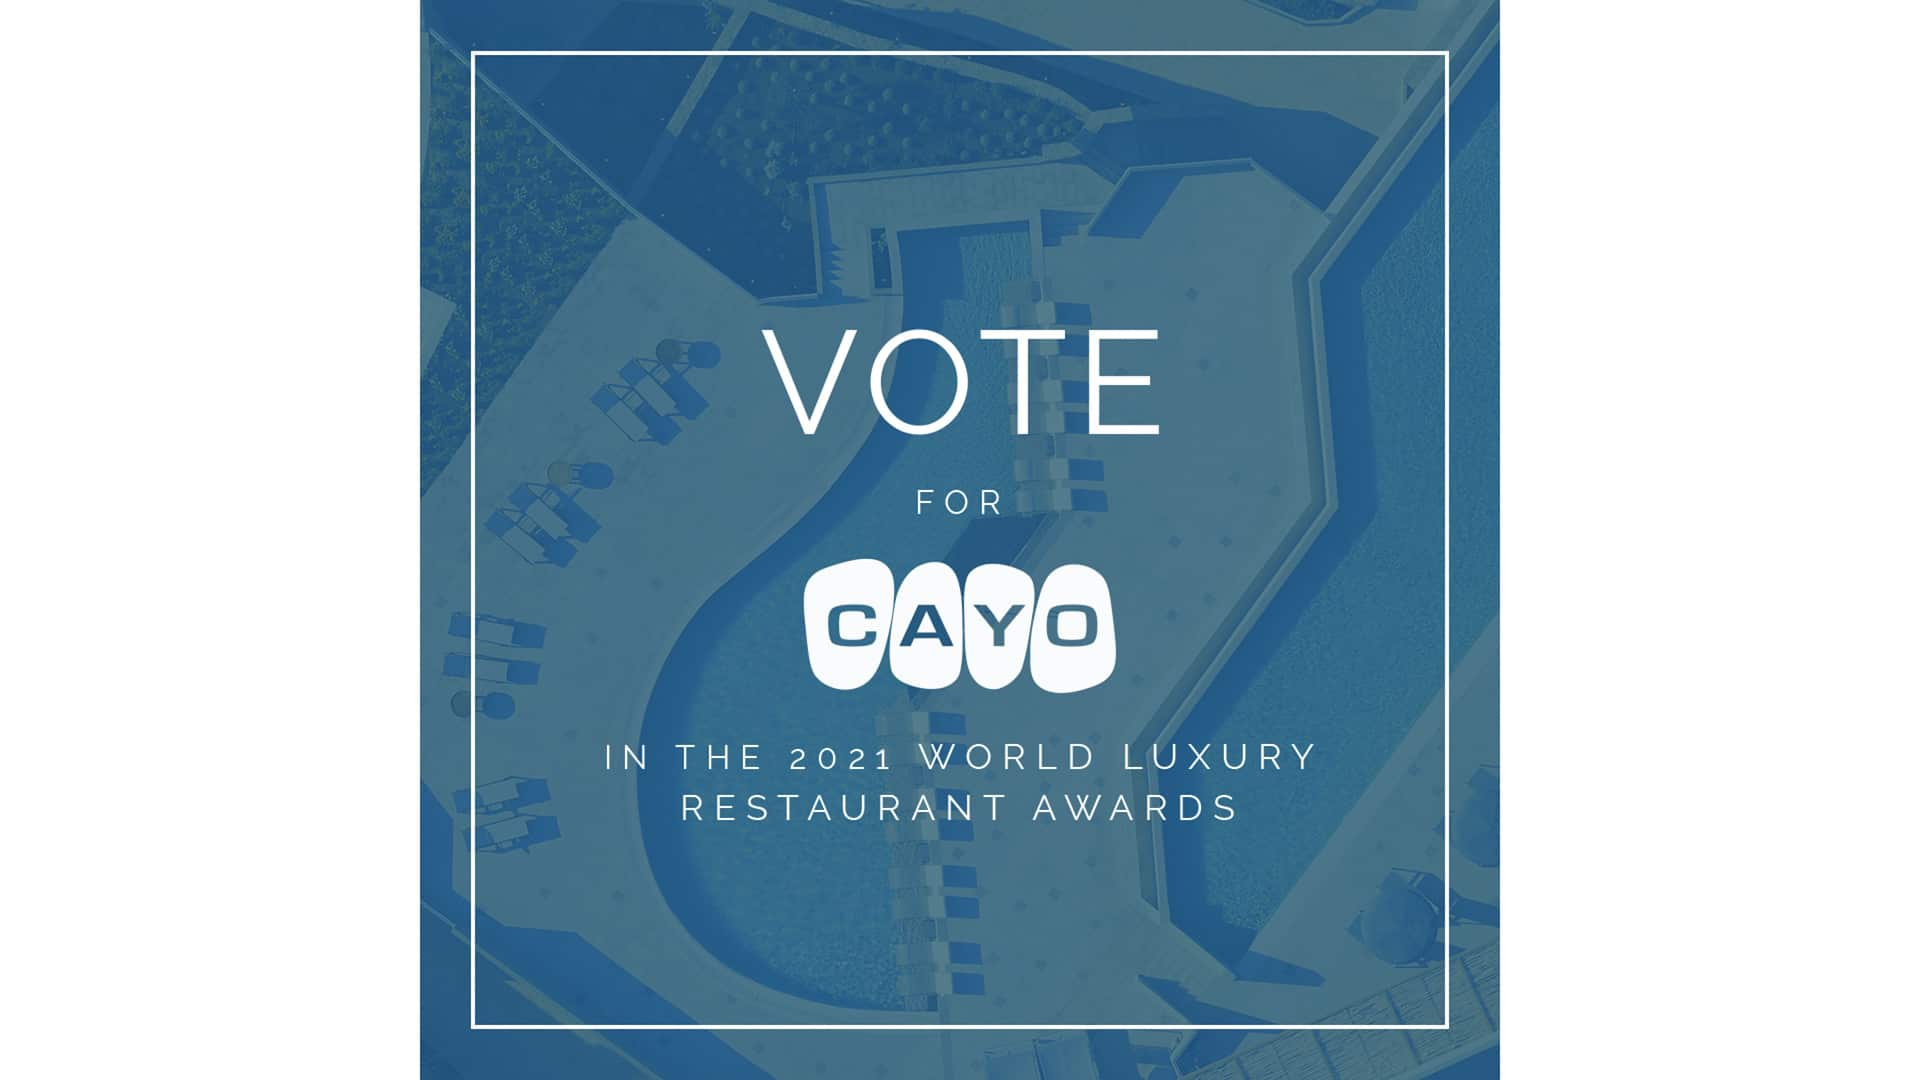 Vote for Cayo in the 2021 Luxury Hotel Awards.